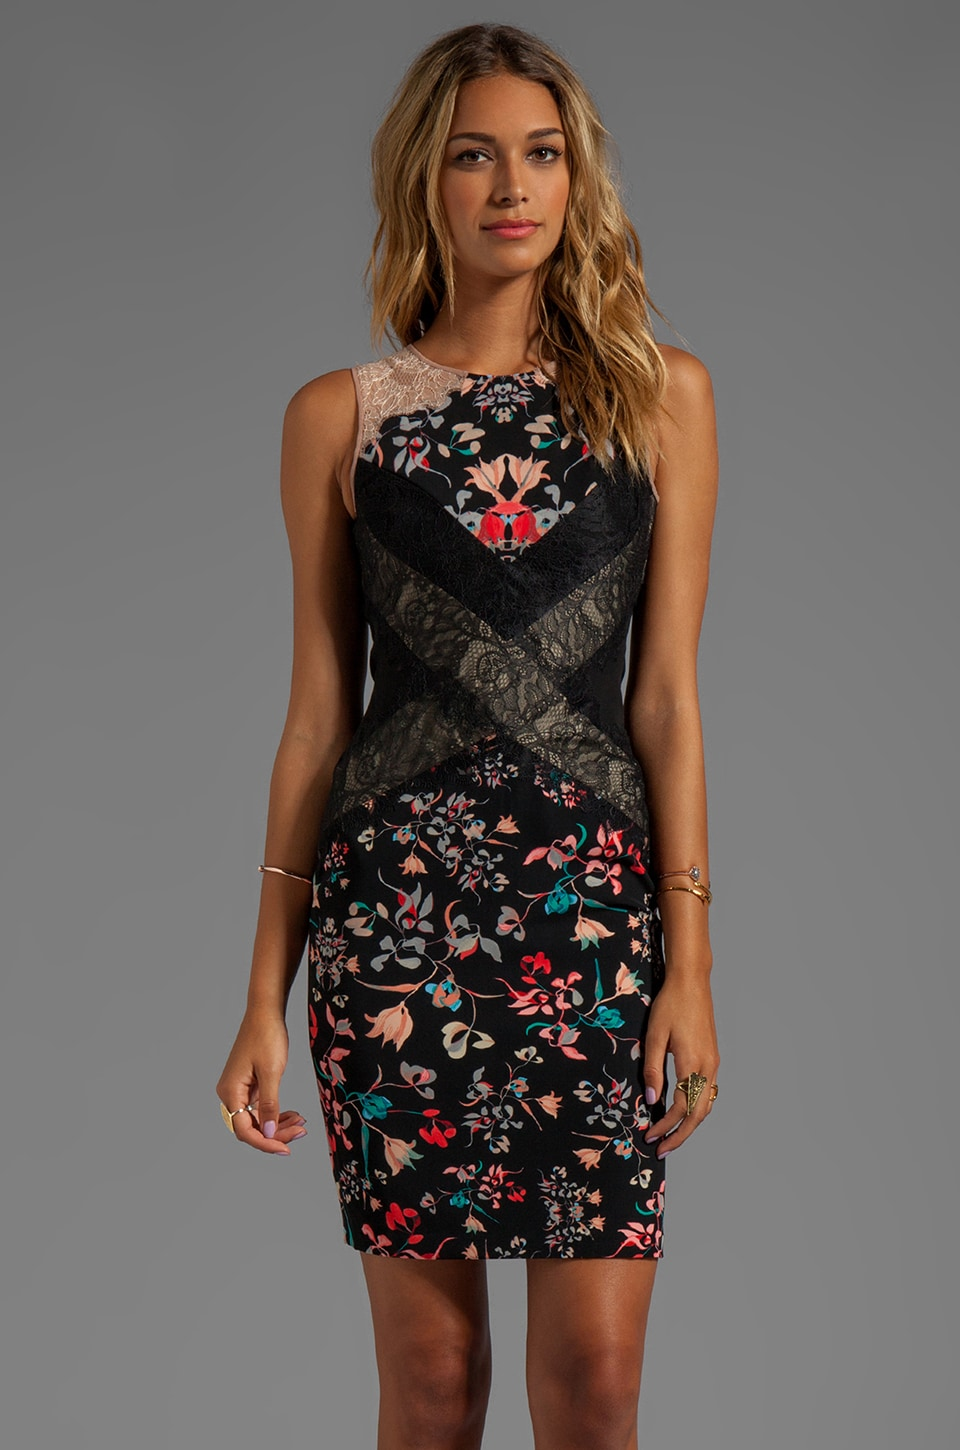 BCBGMAXAZRIA Sleeveless Print Dress in Black Combo